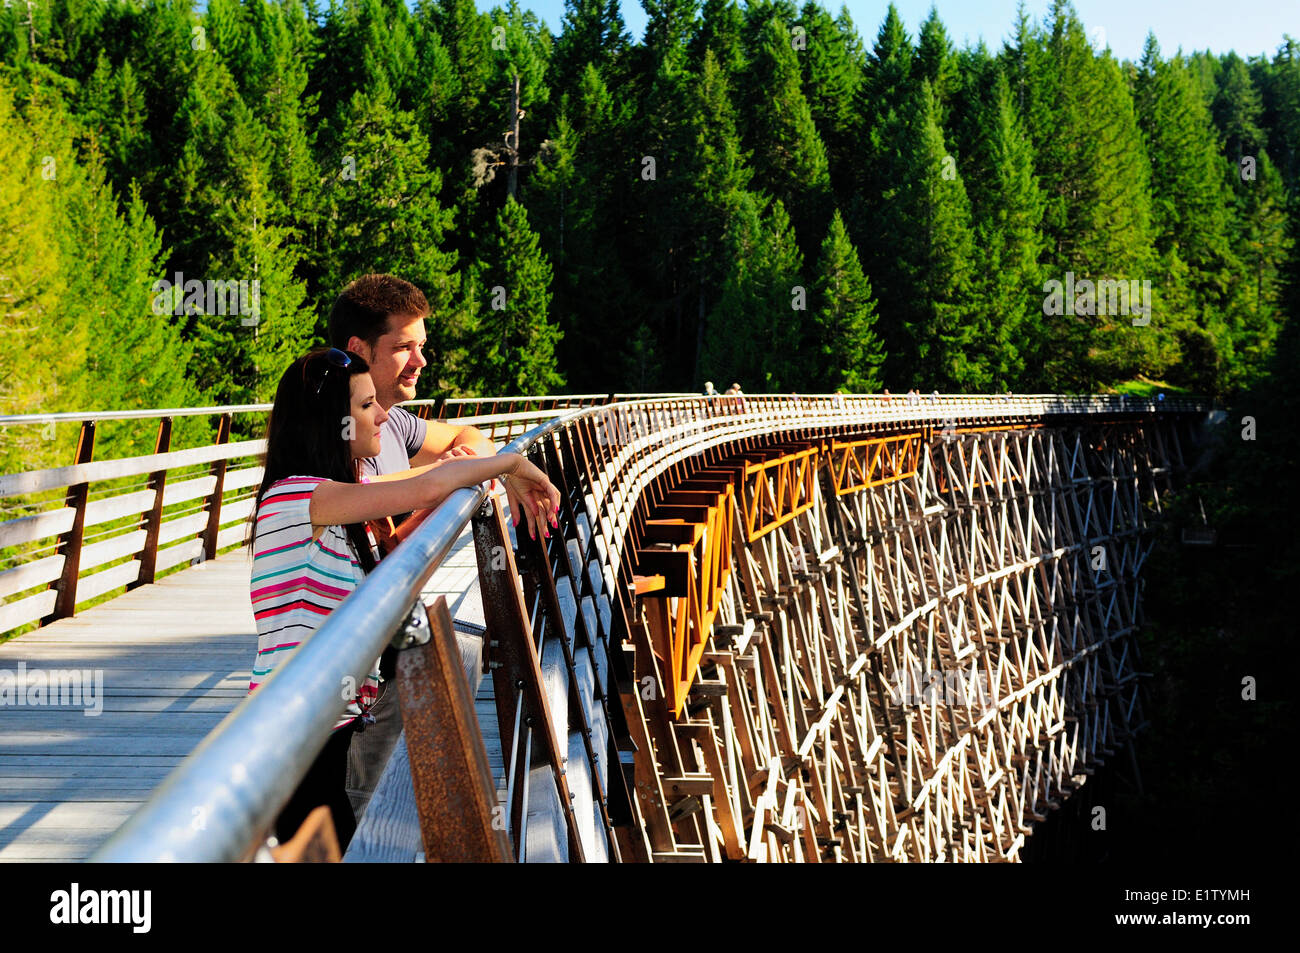 A young couple enjoy the scenery at the newly renovated Kinsol Trestle in Shawnigan Lake, BC. - Stock Image